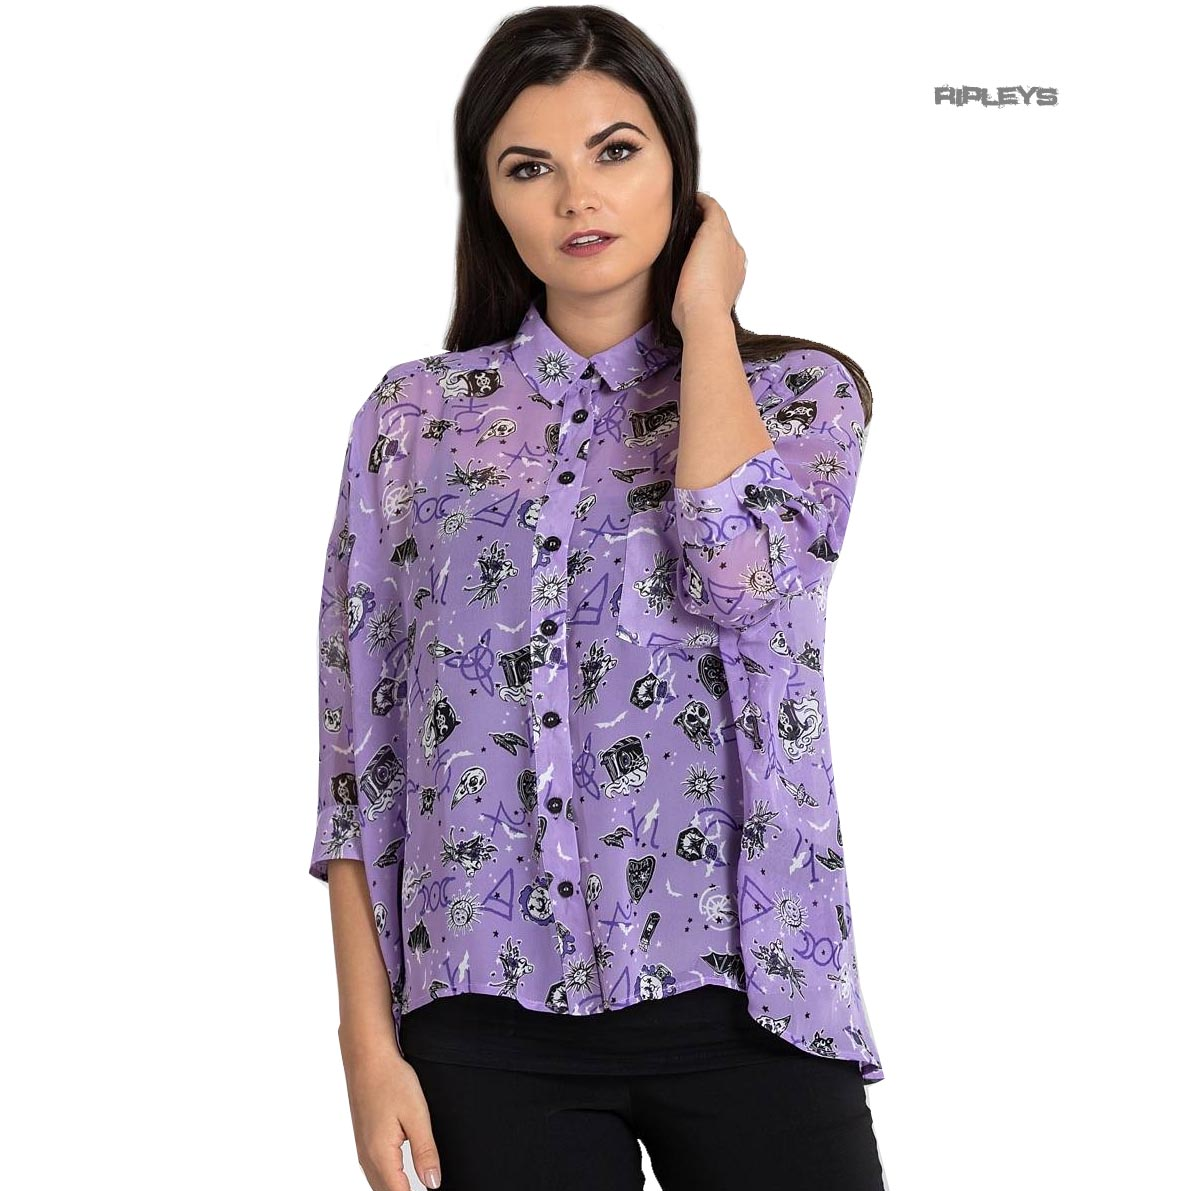 Hell-Bunny-Shirt-Top-Gothic-Witchy-ELSPETH-Lavender-Purple-Blouse-All-Sizes thumbnail 10